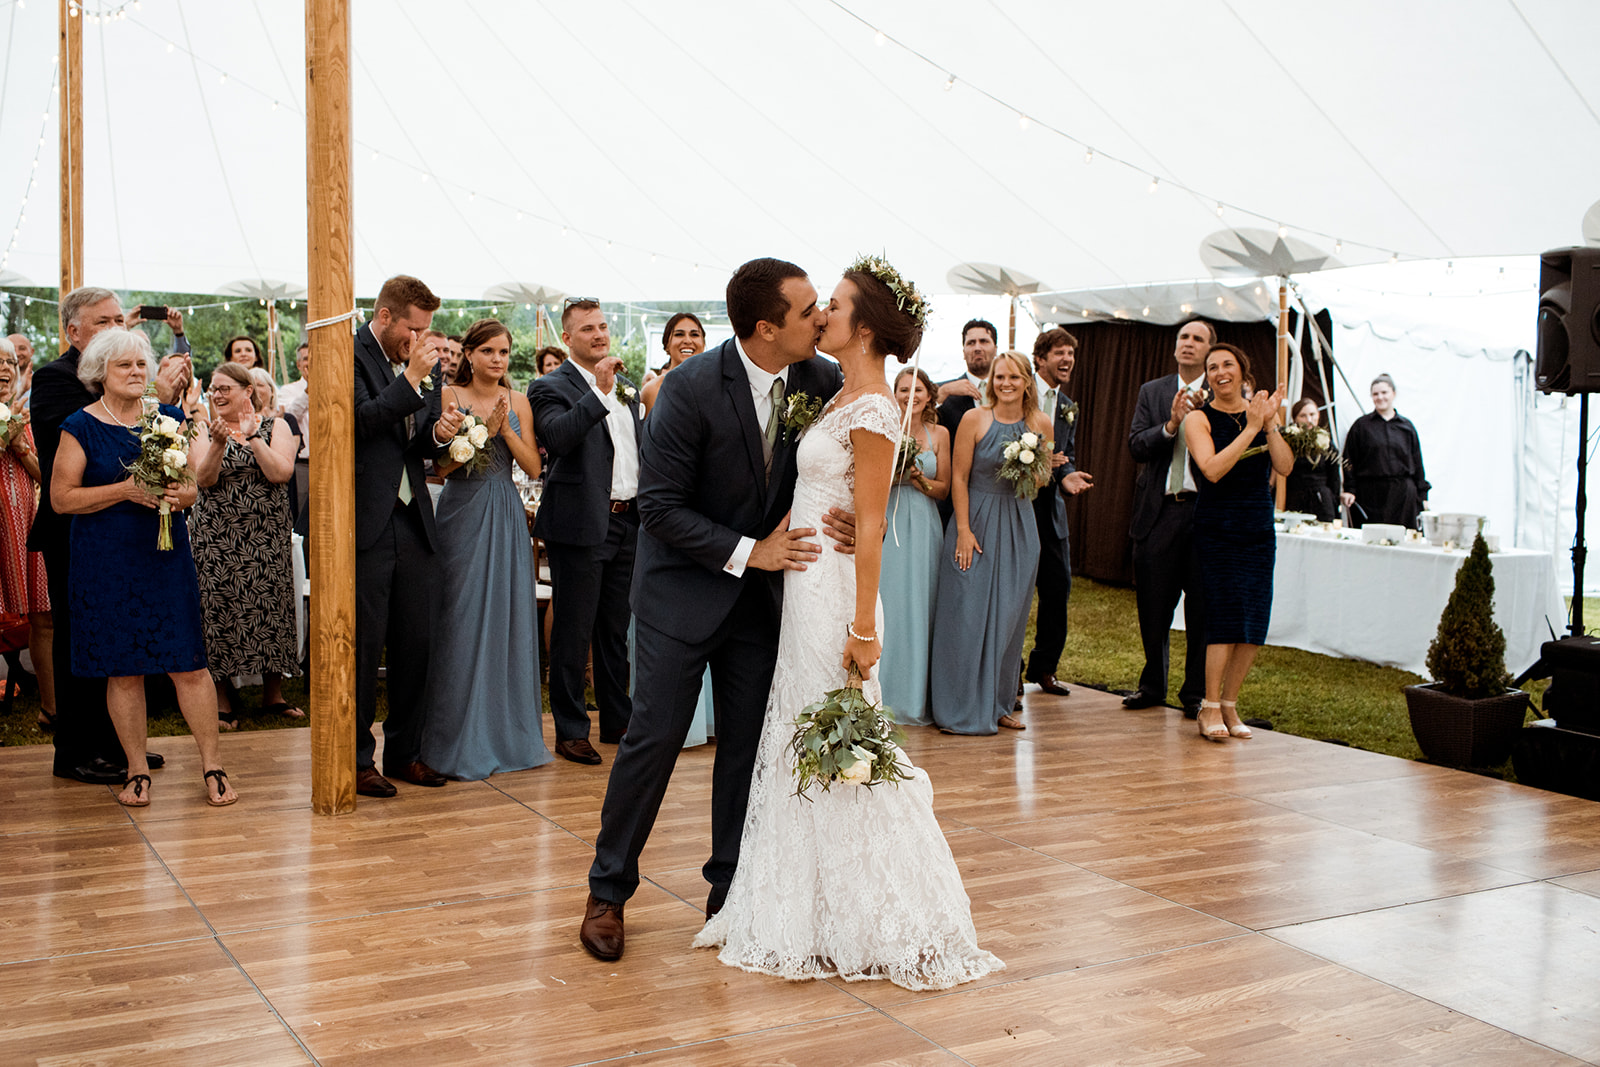 Outdoor sperry tented wedding with a wooden dance floor. - Pearl Weddings & Events